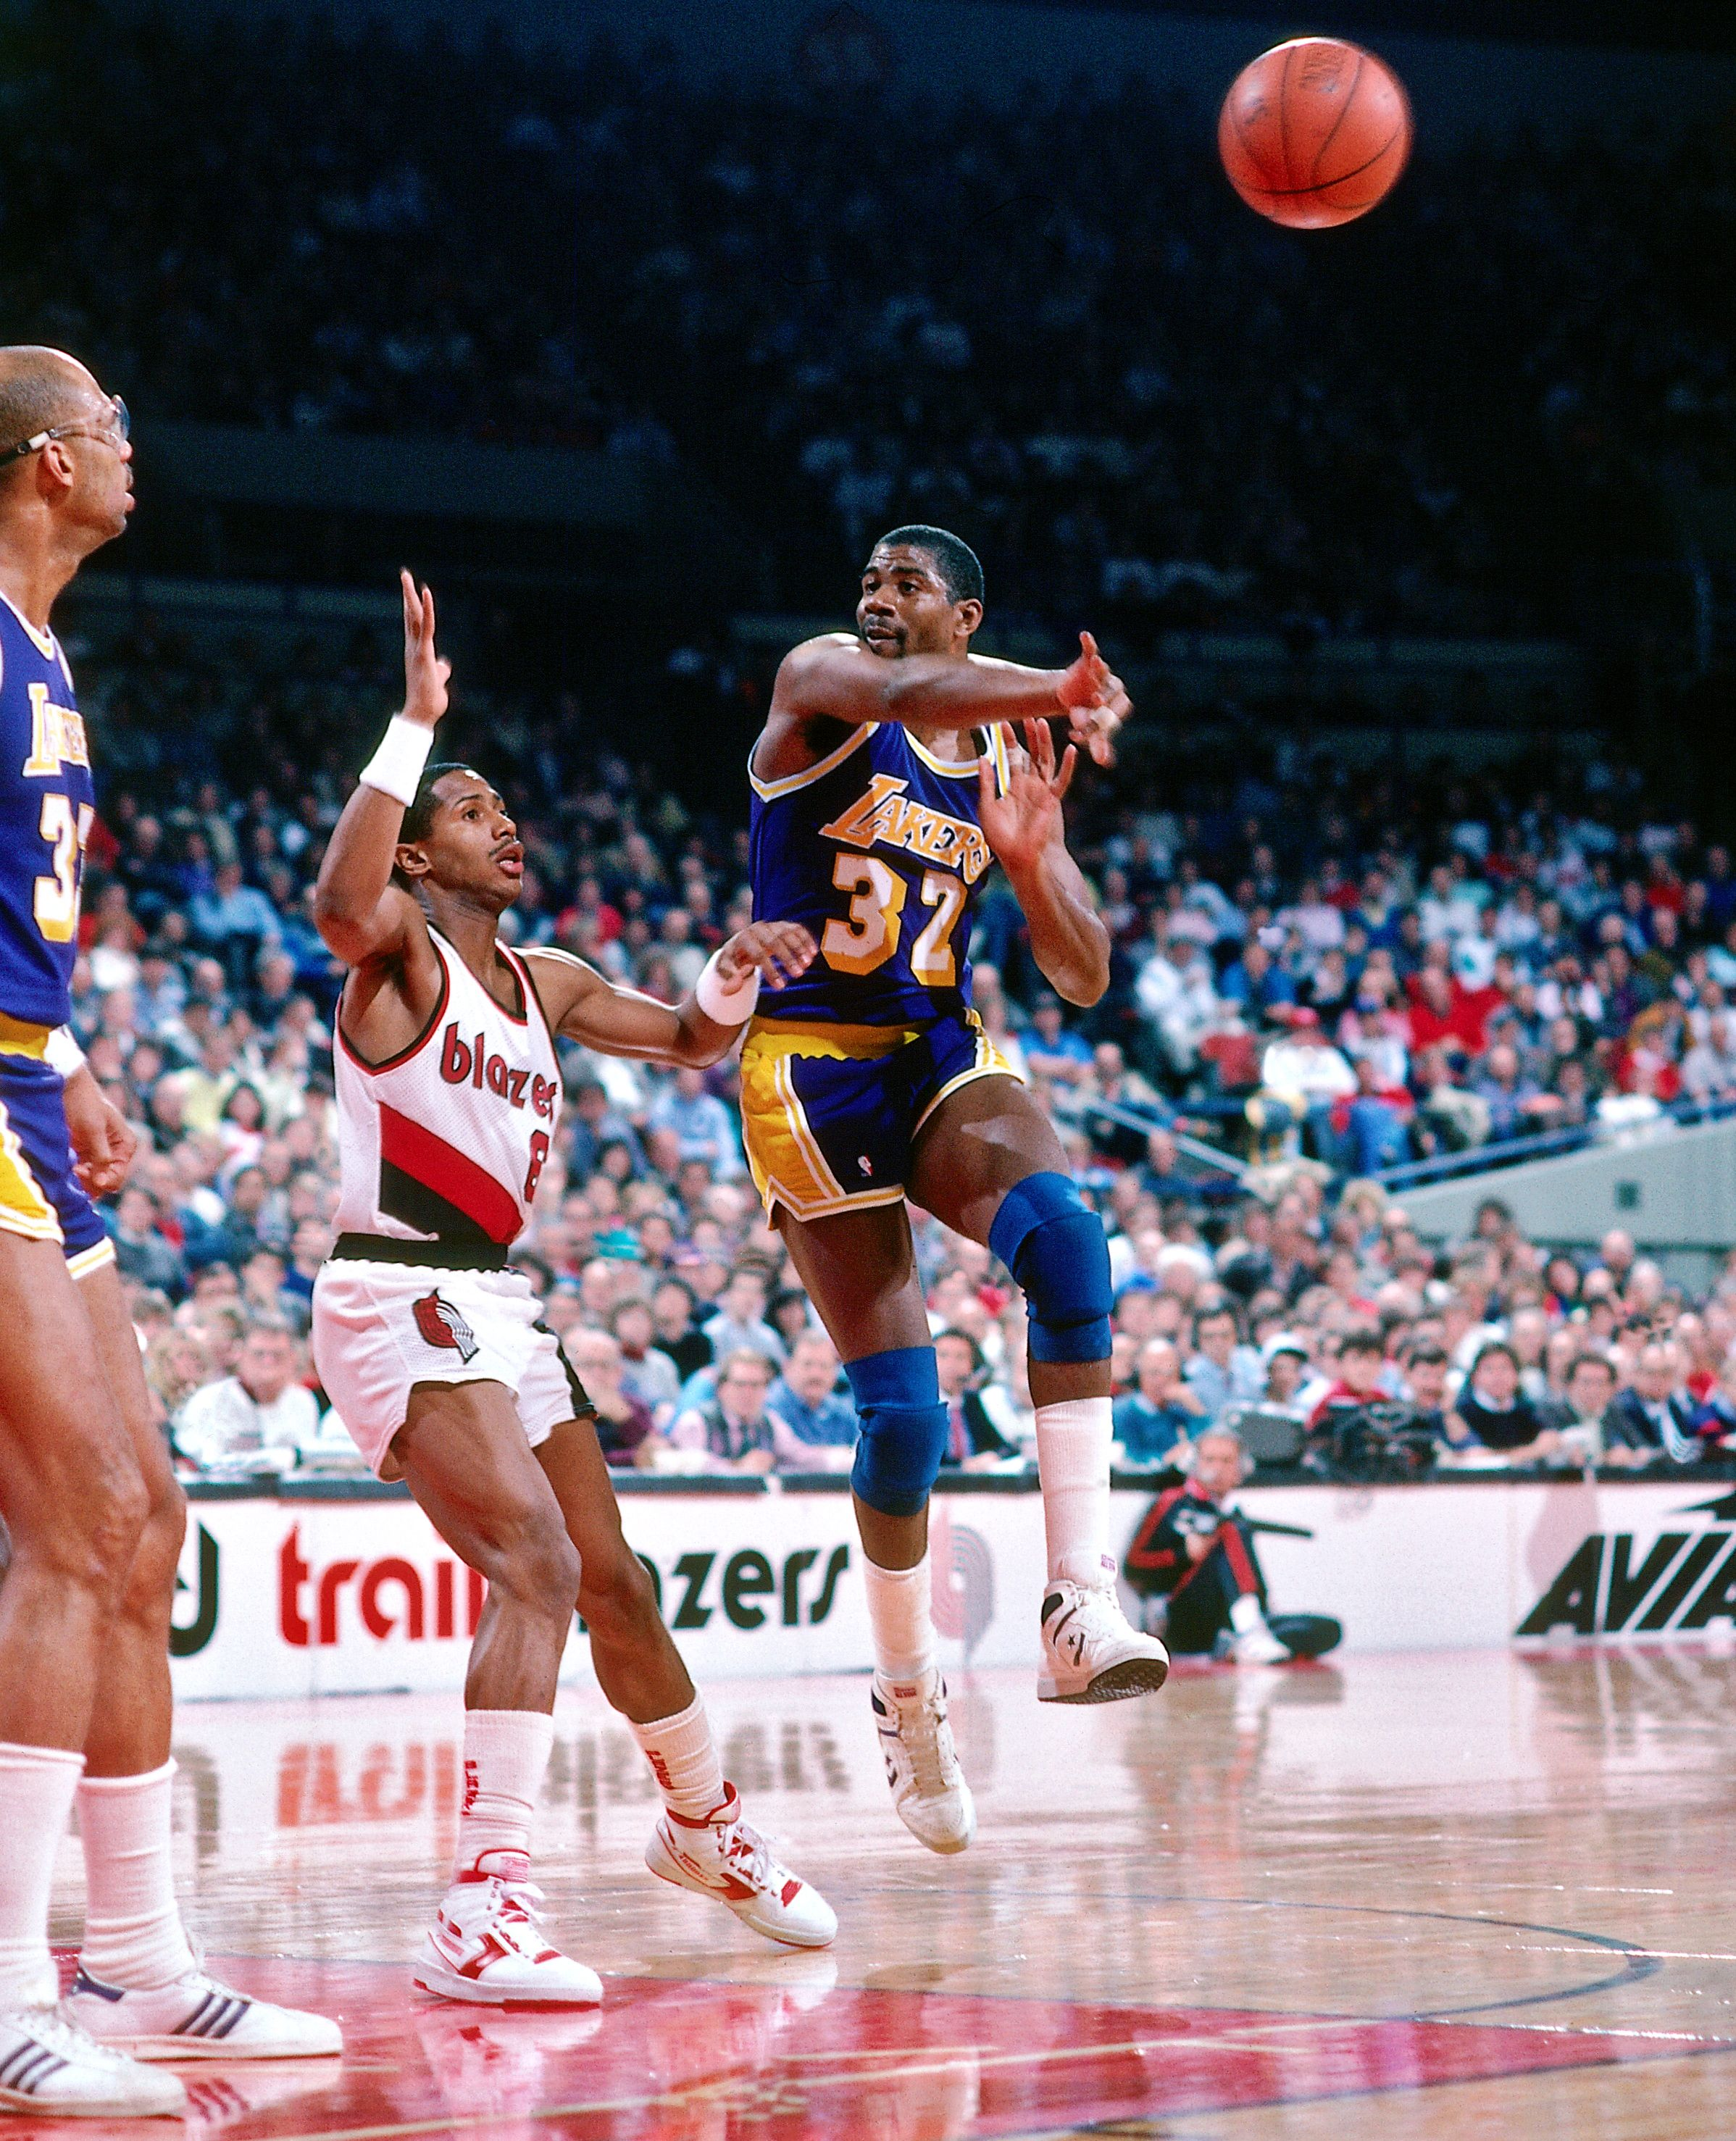 Photos: 10 Greatest NBA Players Ever